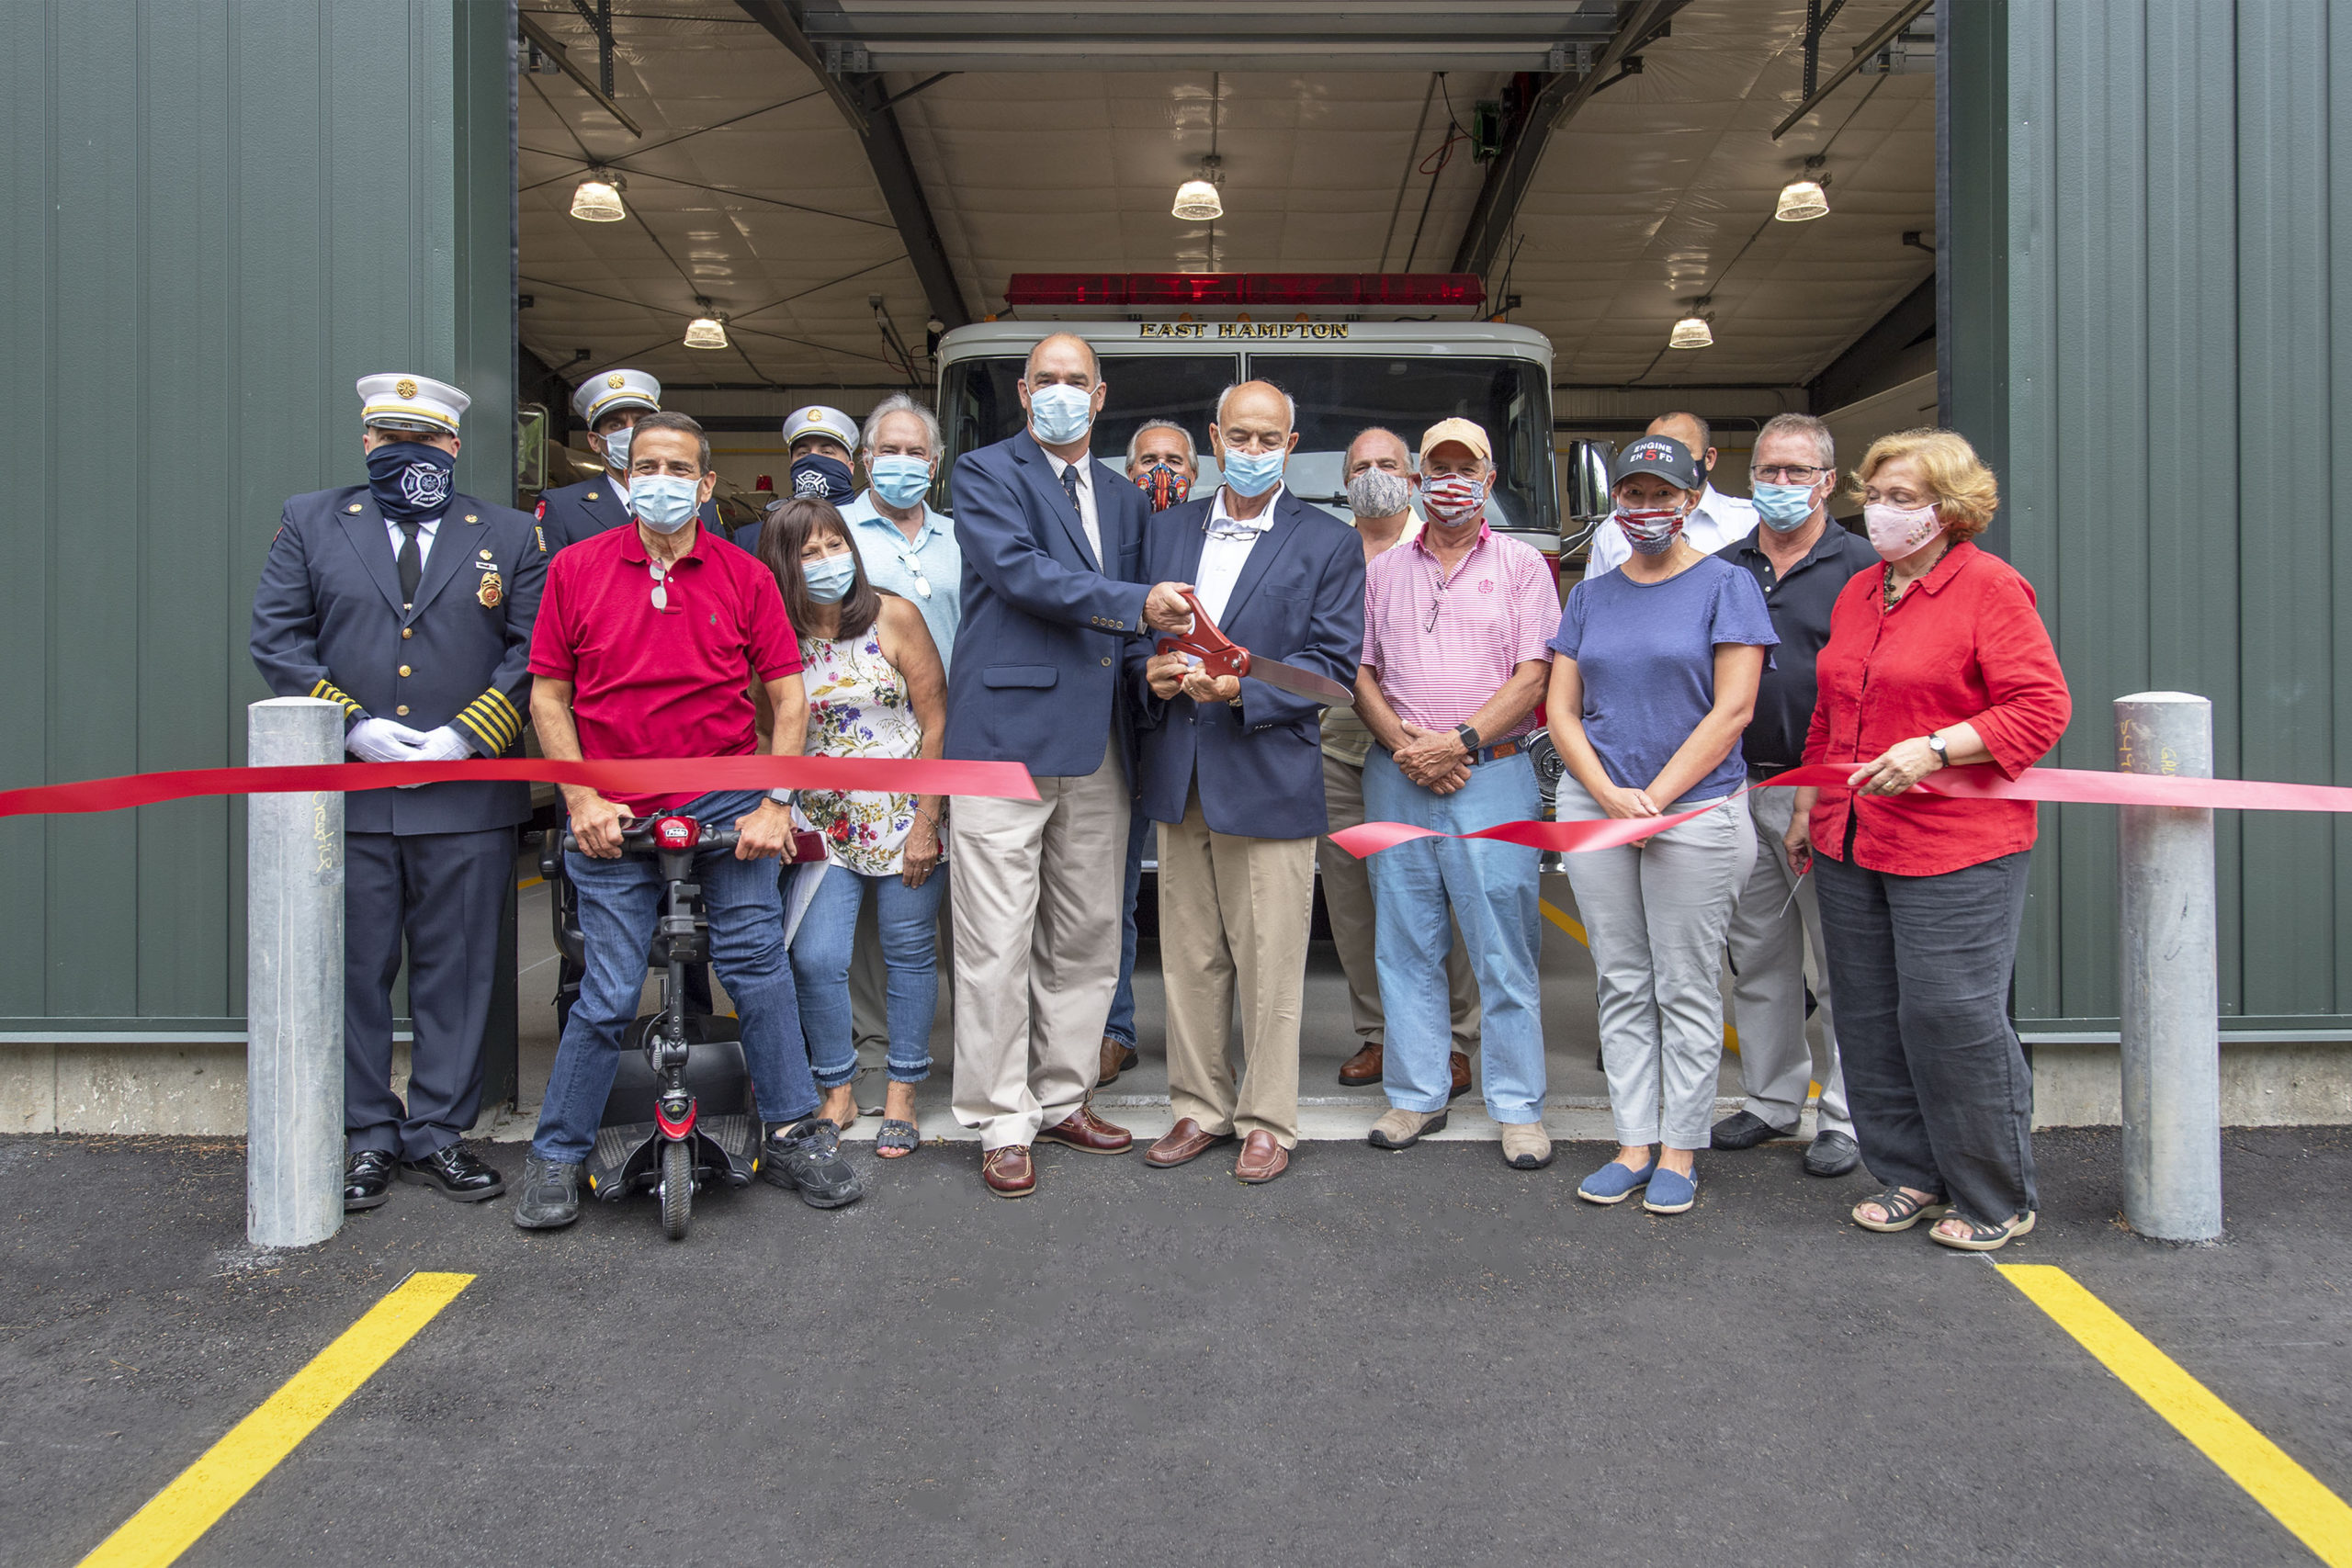 East Hampton Town Supervisor Peter Van Scoyoc and East Hampton Village Deputy Mayor Rick Lawler cut the ribbon during the ribbon-cutting ceremony for the new East Hampton Fire Department substation at 18 Old Northwest Road on Friday.   MICHAEL HELLER